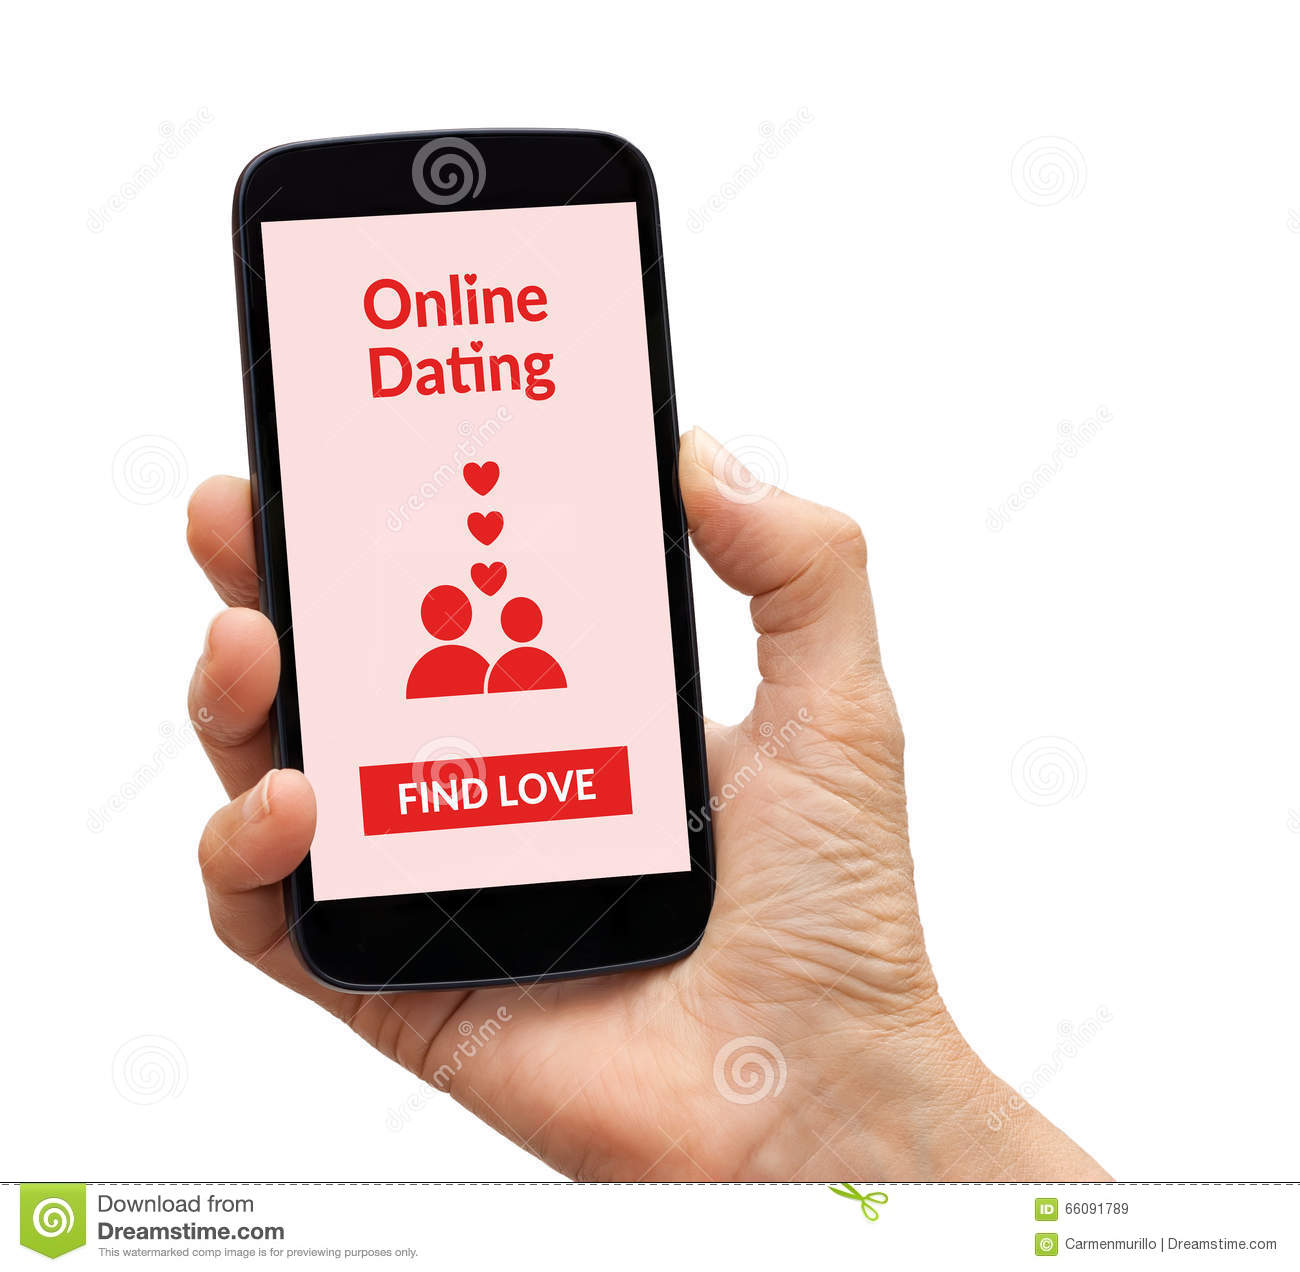 Hastighet dating Workout